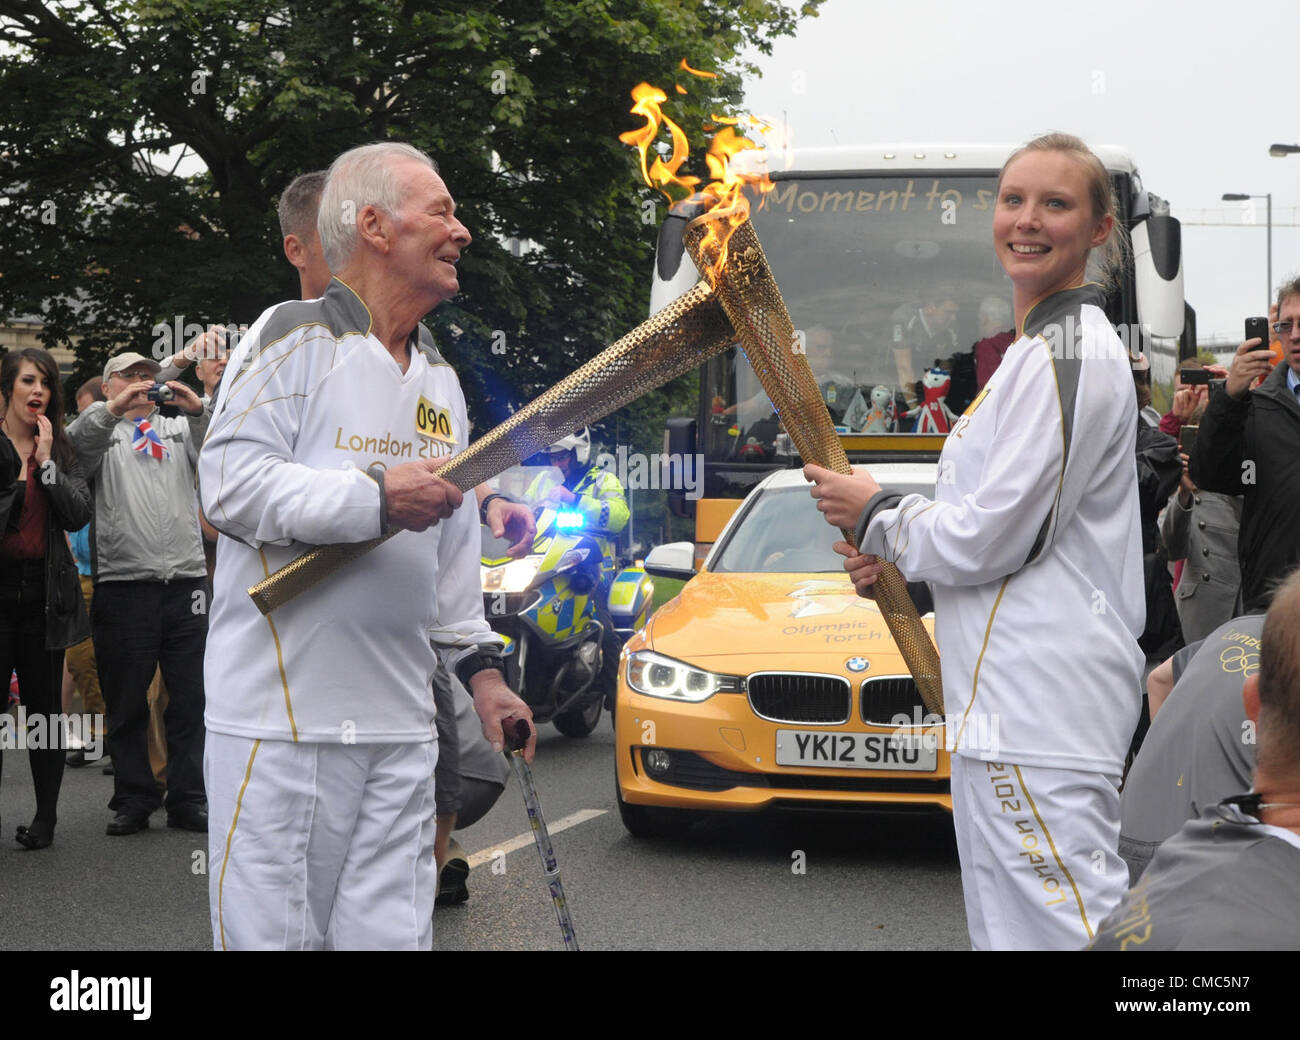 SOUTHAMPTON, ENGLAND - July14: The torch 'kiss' as two runners pass on the flame. Olympic Torch event on - Stock Image